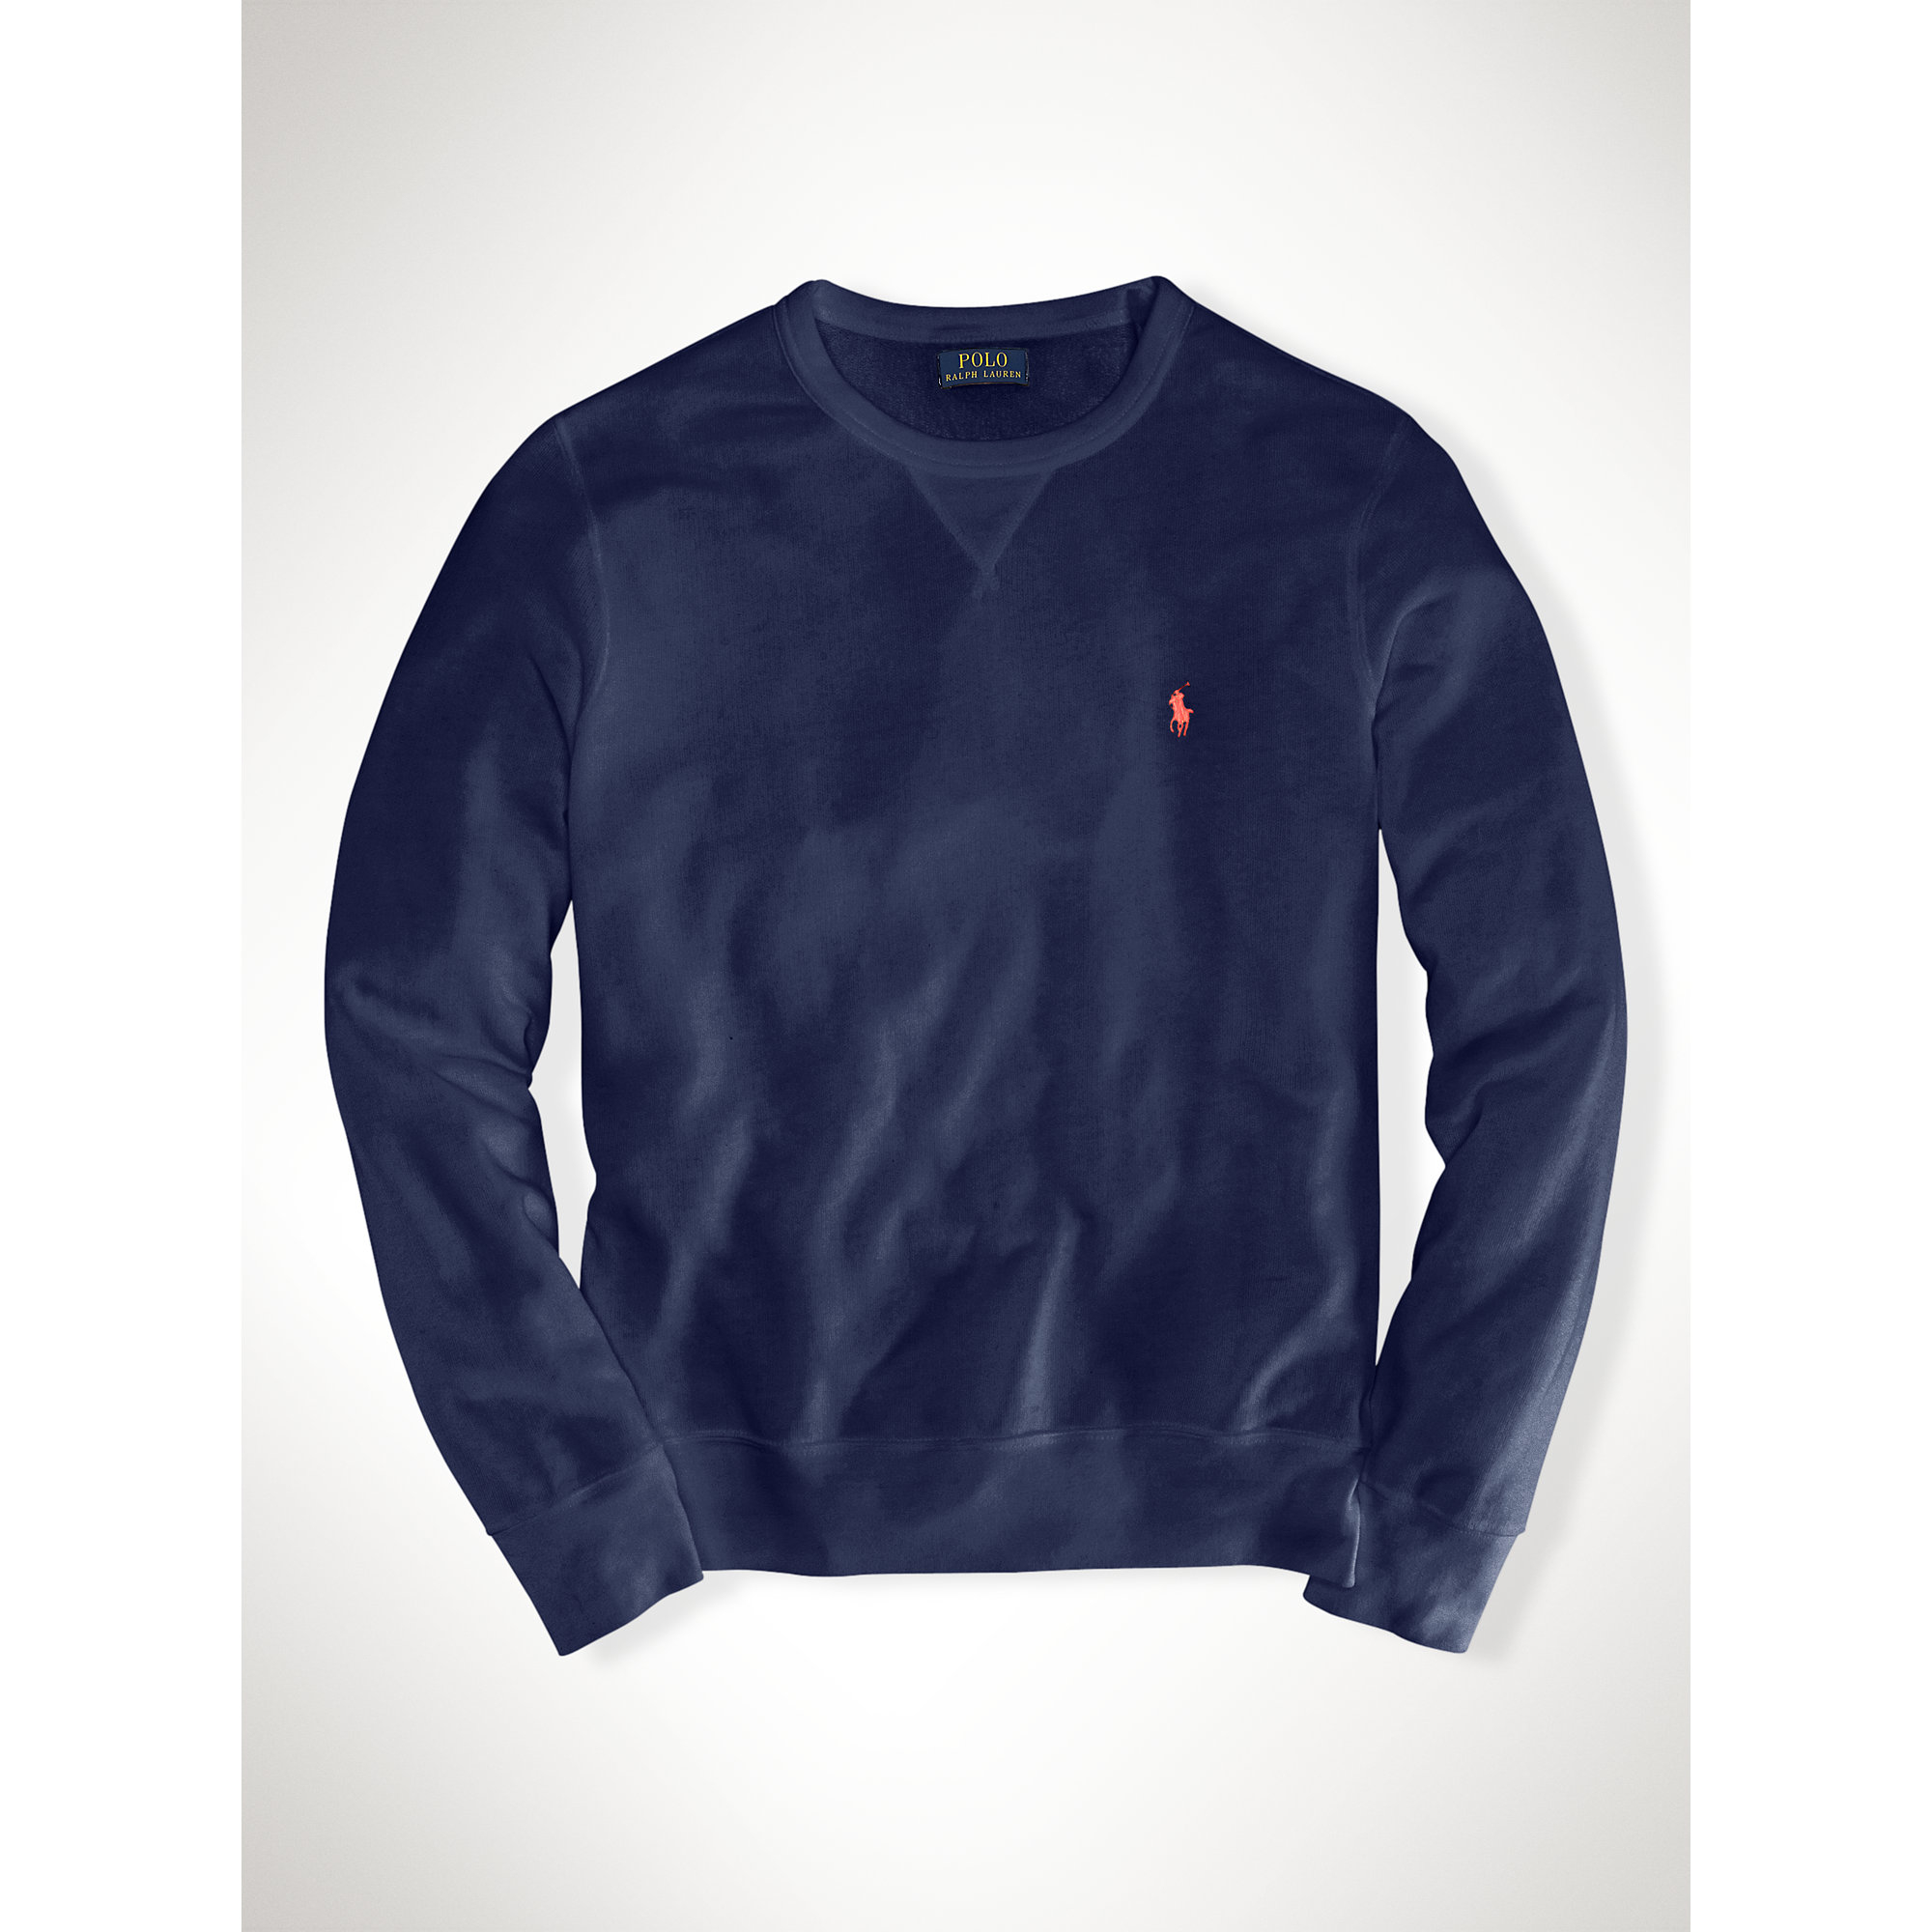 polo ralph lauren french terry sweatshirt in blue lyst. Black Bedroom Furniture Sets. Home Design Ideas